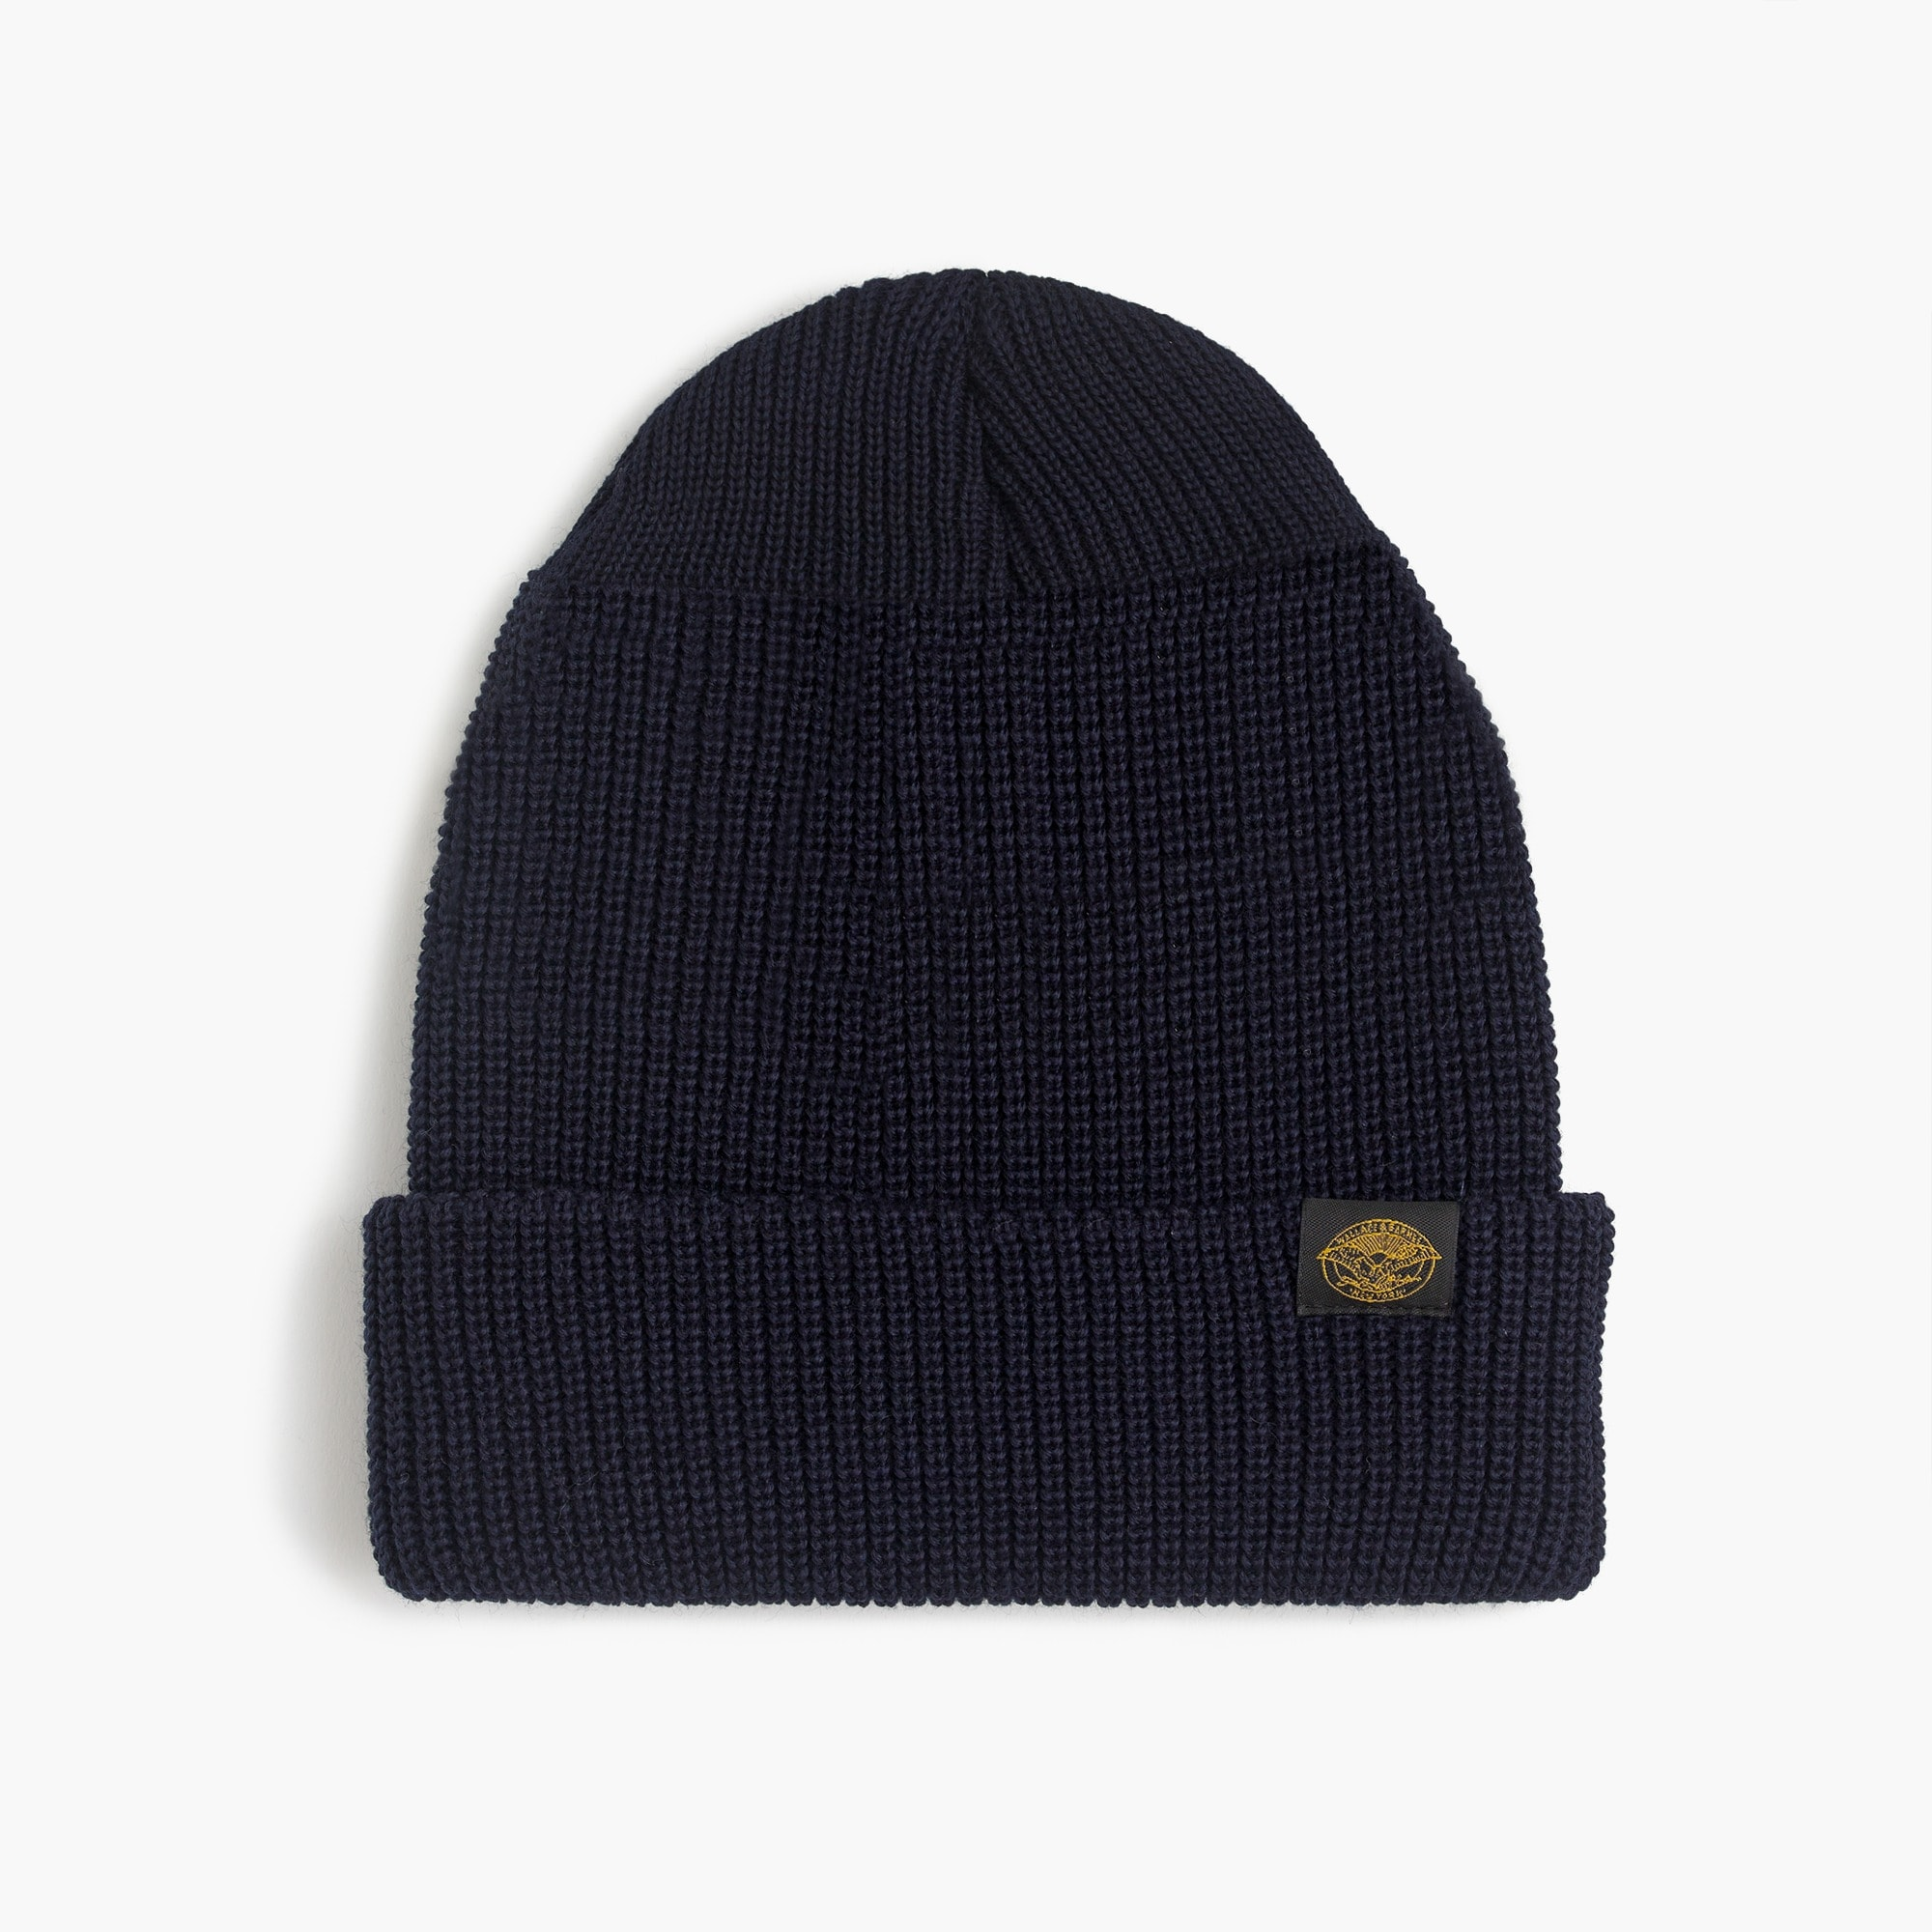 Wallace & Barnes wool beanie in navy